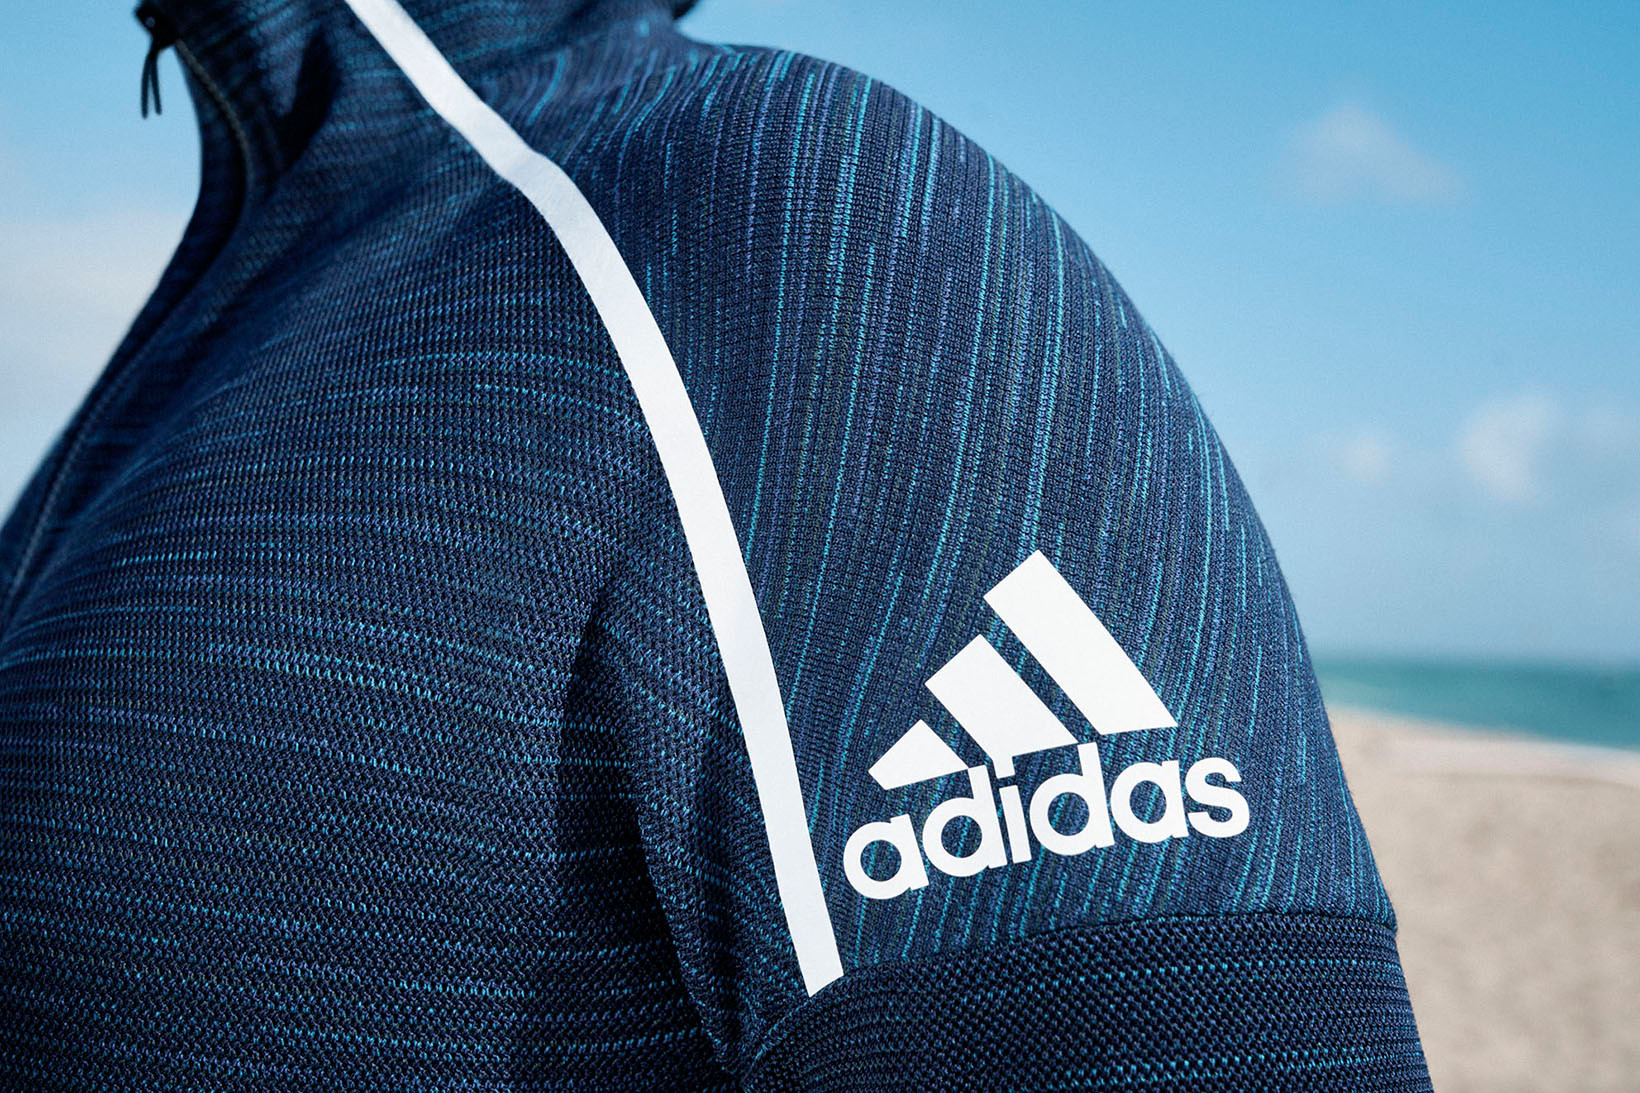 https%3A%2F%2Fhypebeast.com%2Fimage%2F2018%2F06%2Fadidas-parley-zne-hoodie-006.jpg